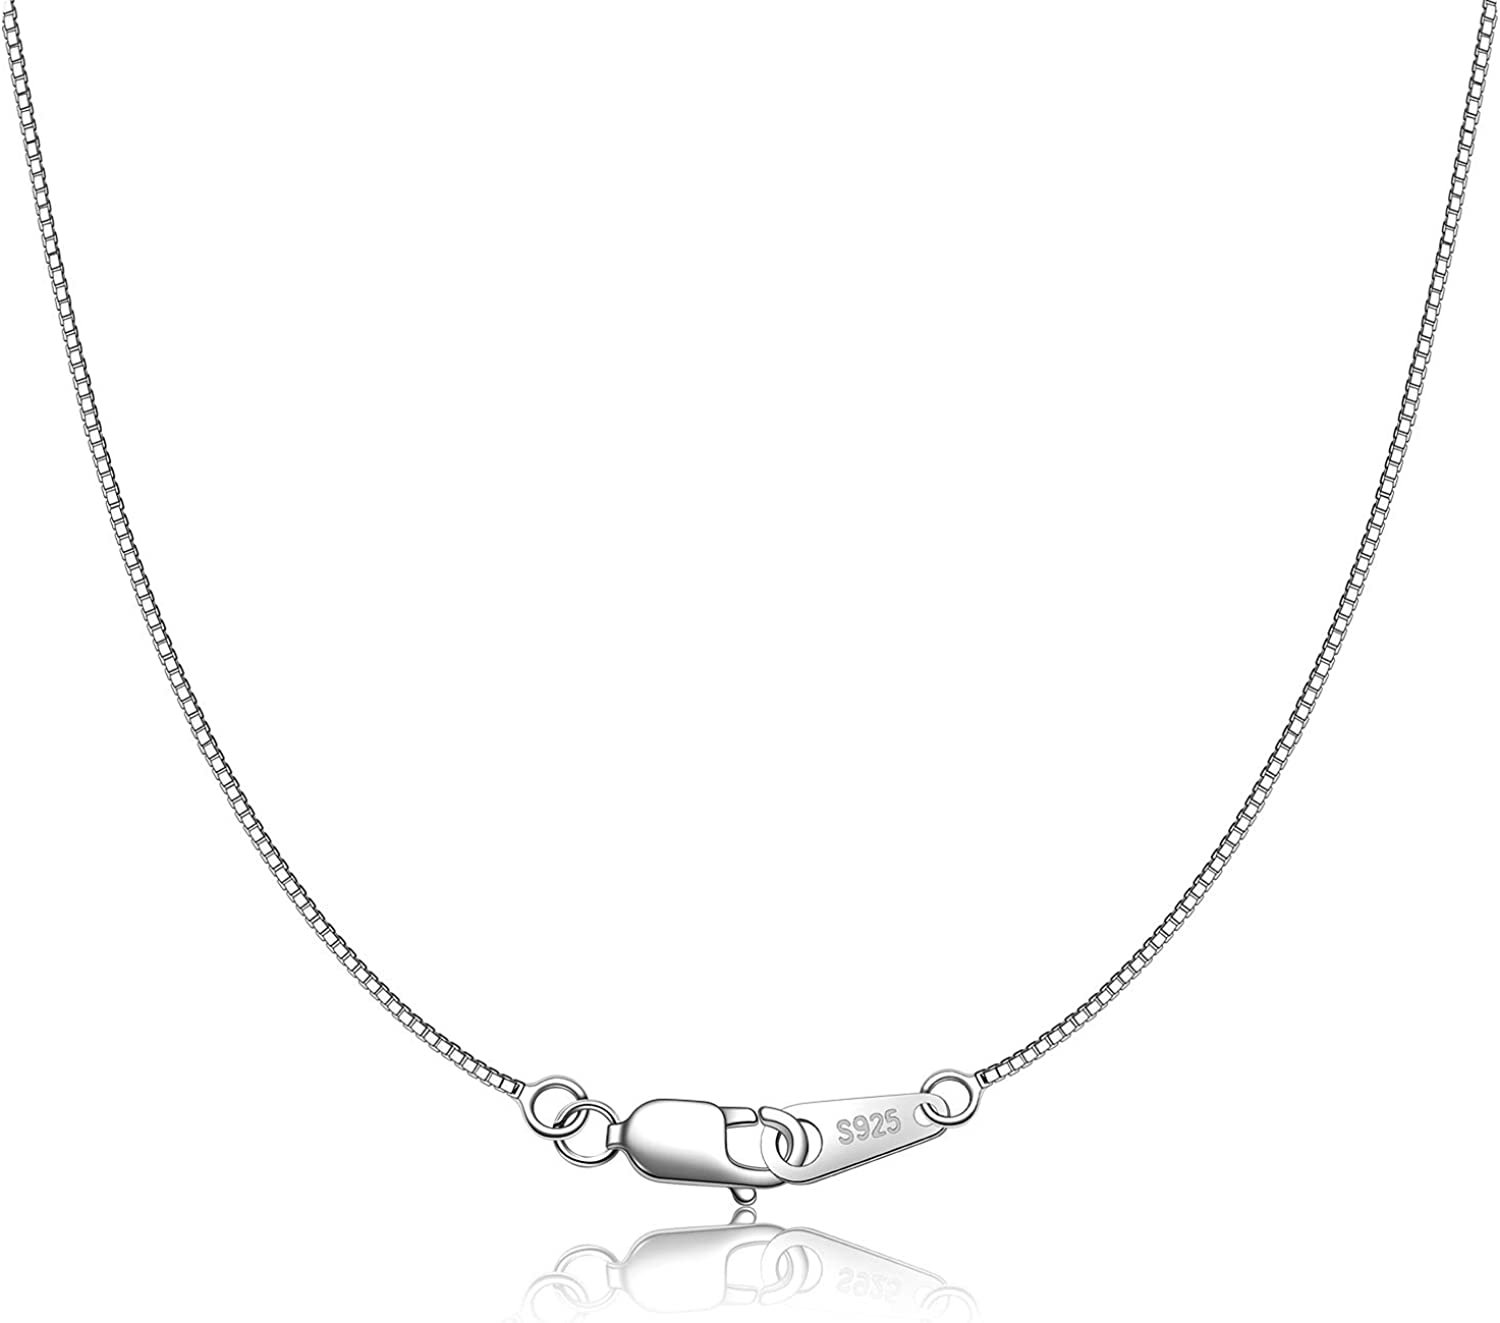 CIELTEAR 5 popular 925 Sterling Silver Chain Max 81% OFF Women Box Necklace for 0.8mm